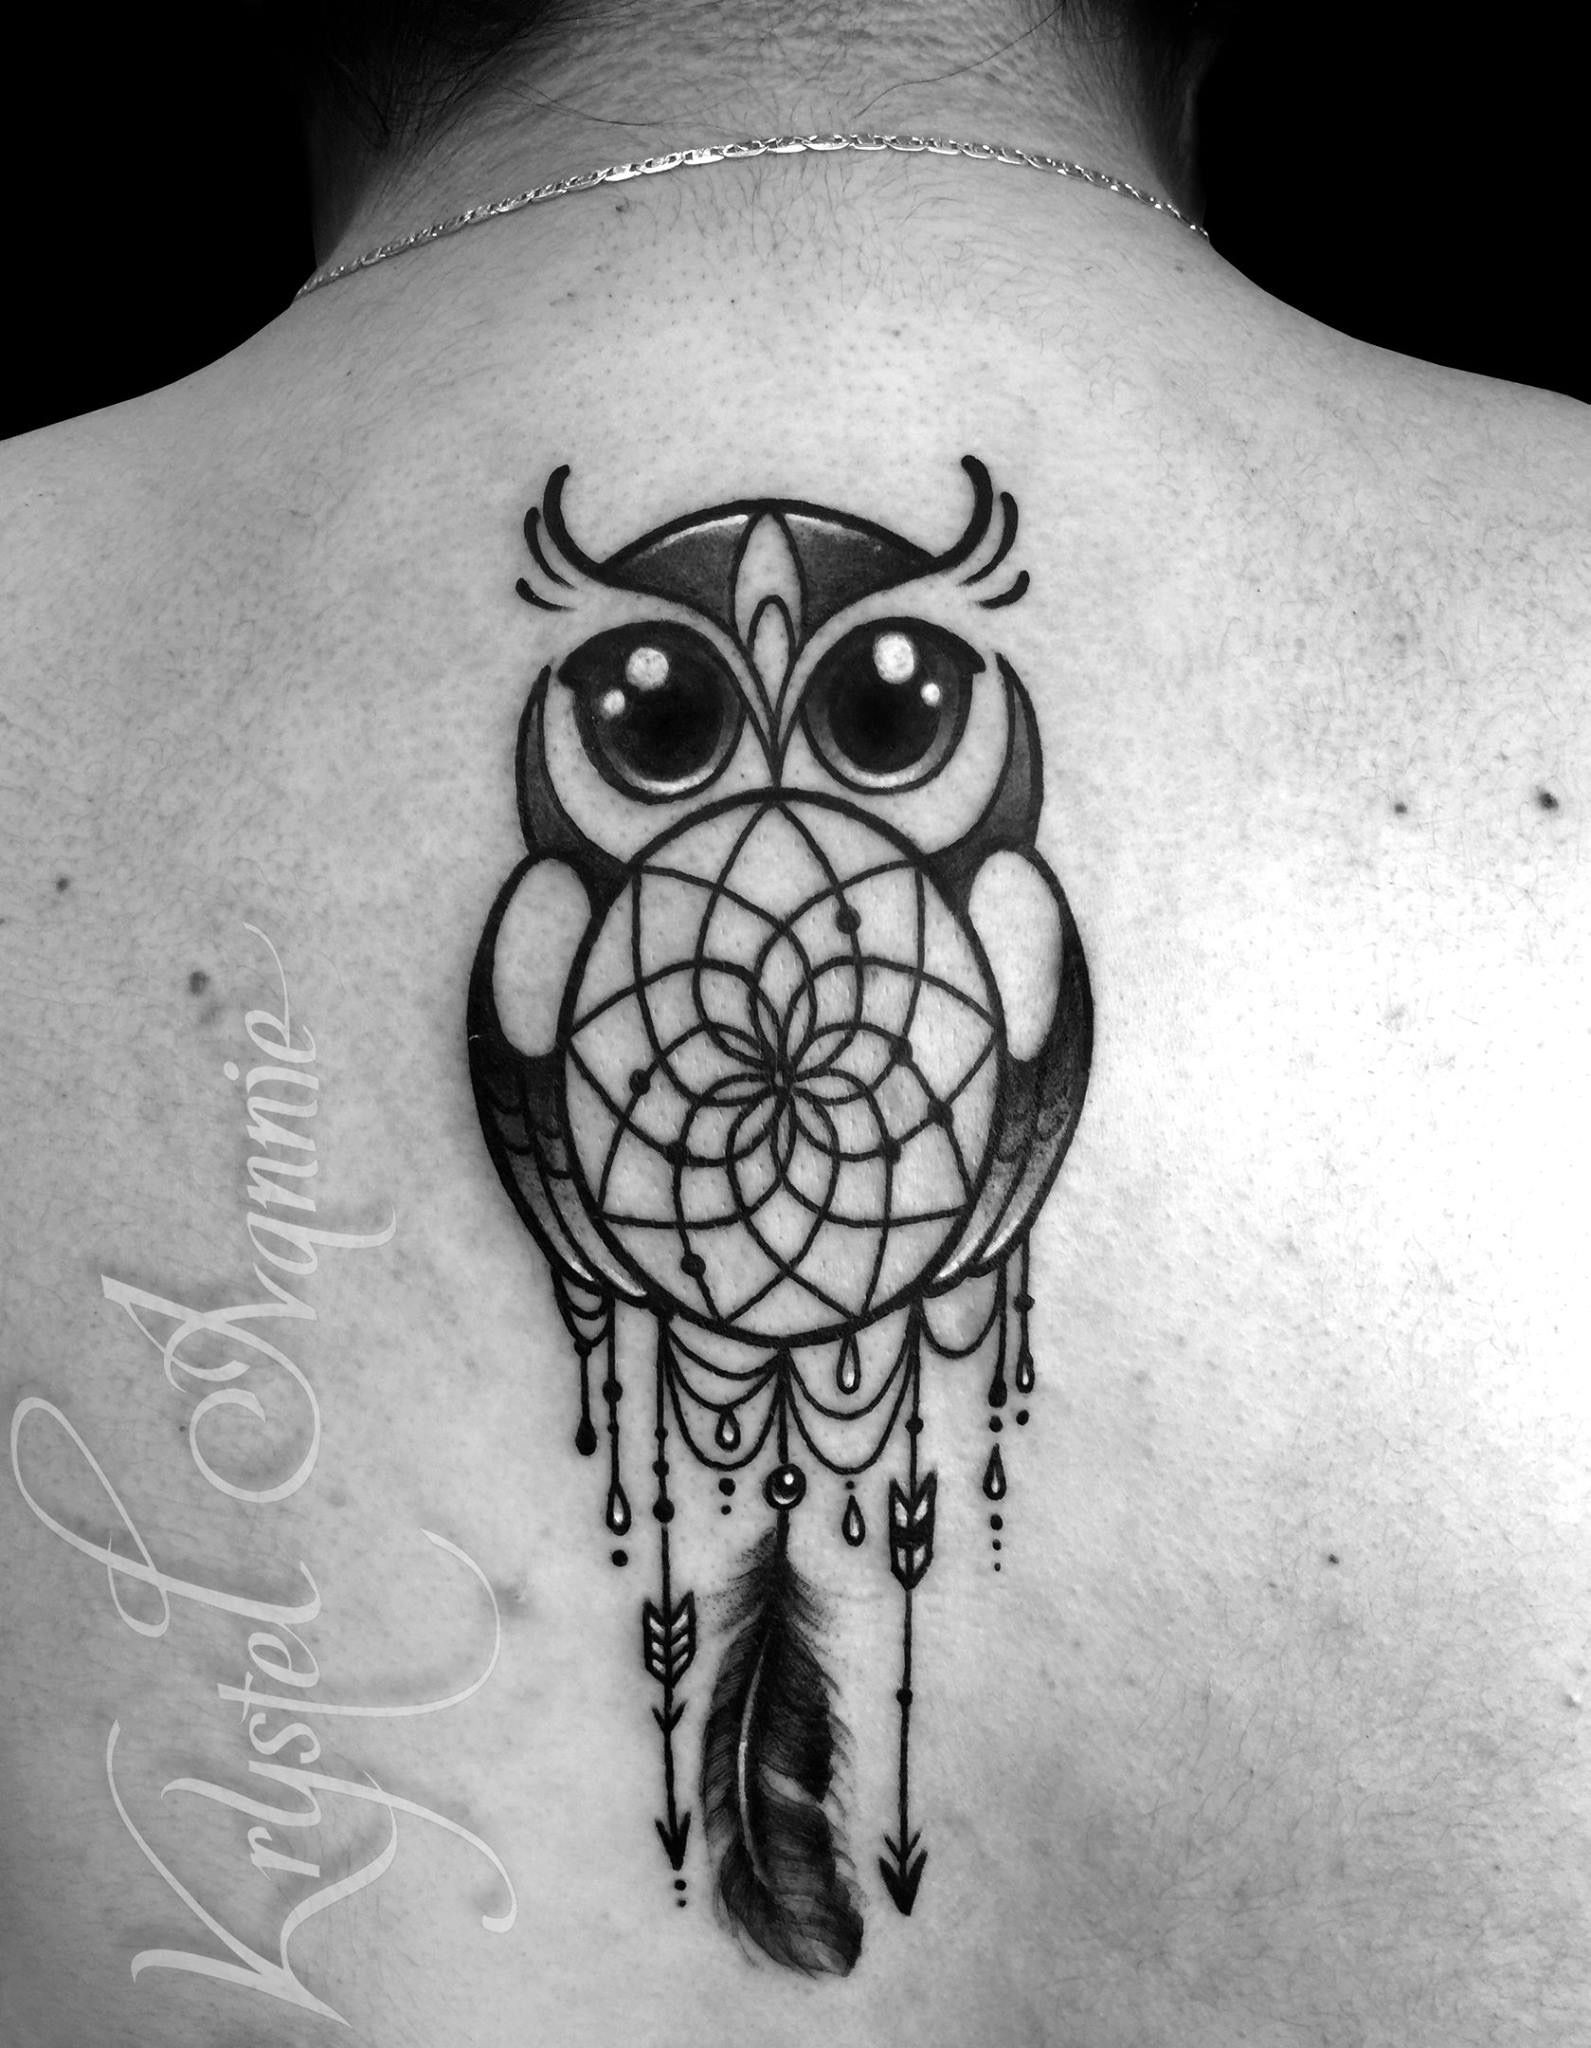 Owl Tattoo Dream Catcher Tattoo Pinterest Tatuaje Buho